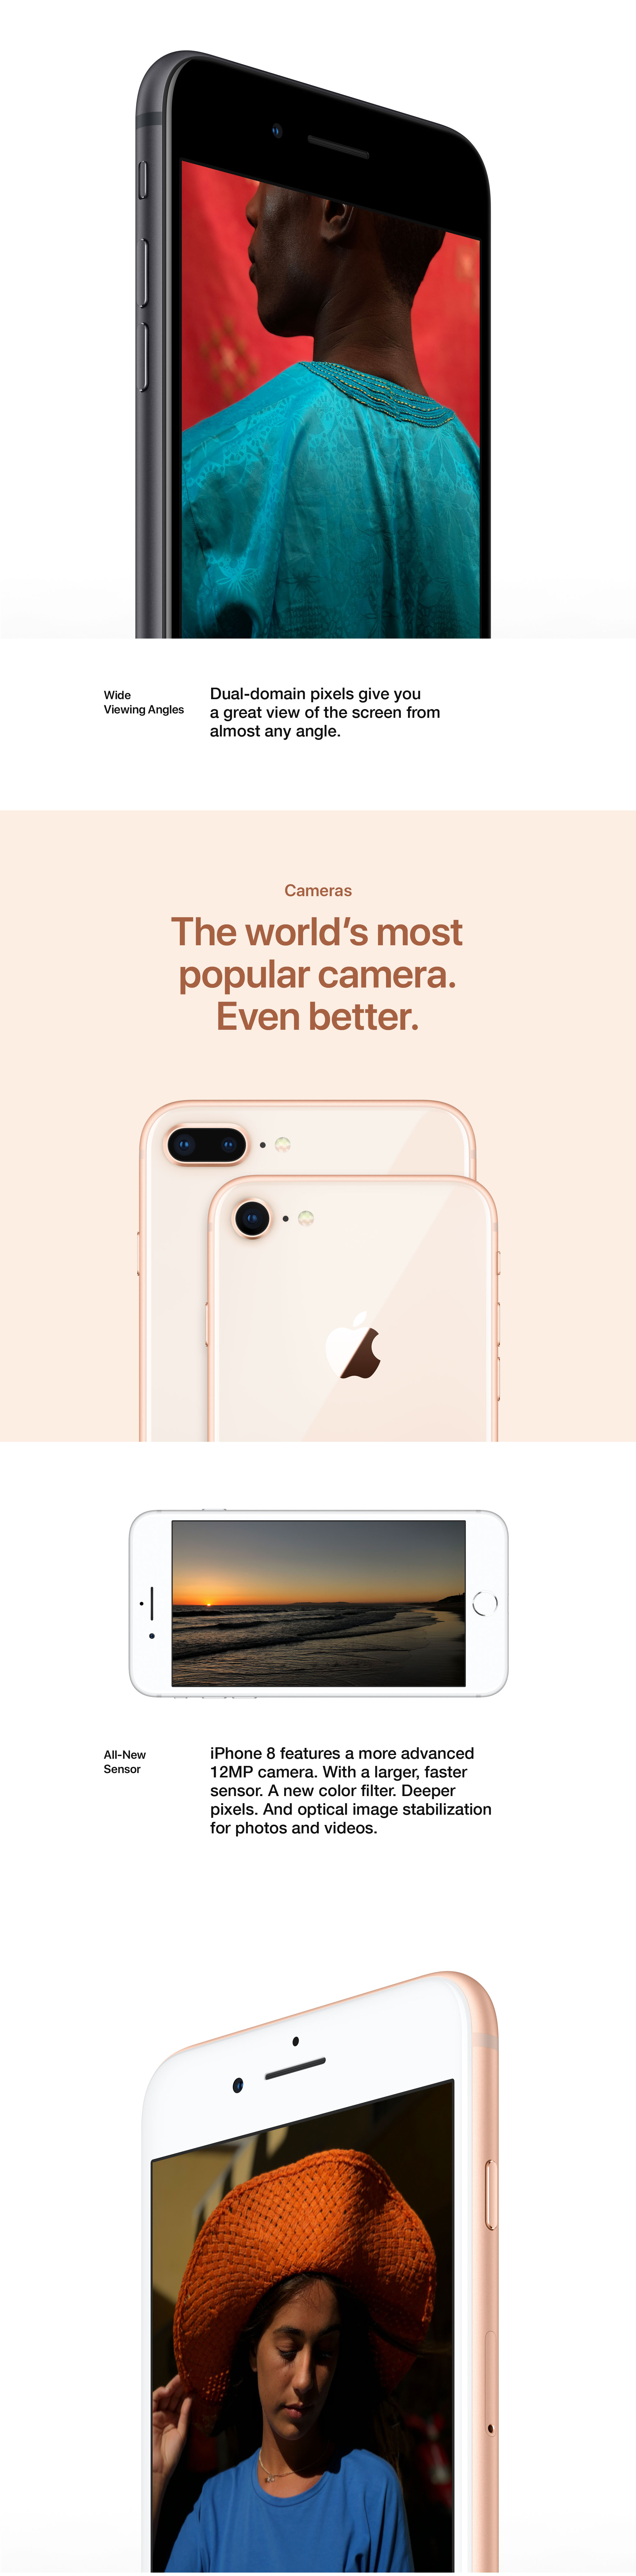 iPhone8 ProductPage1